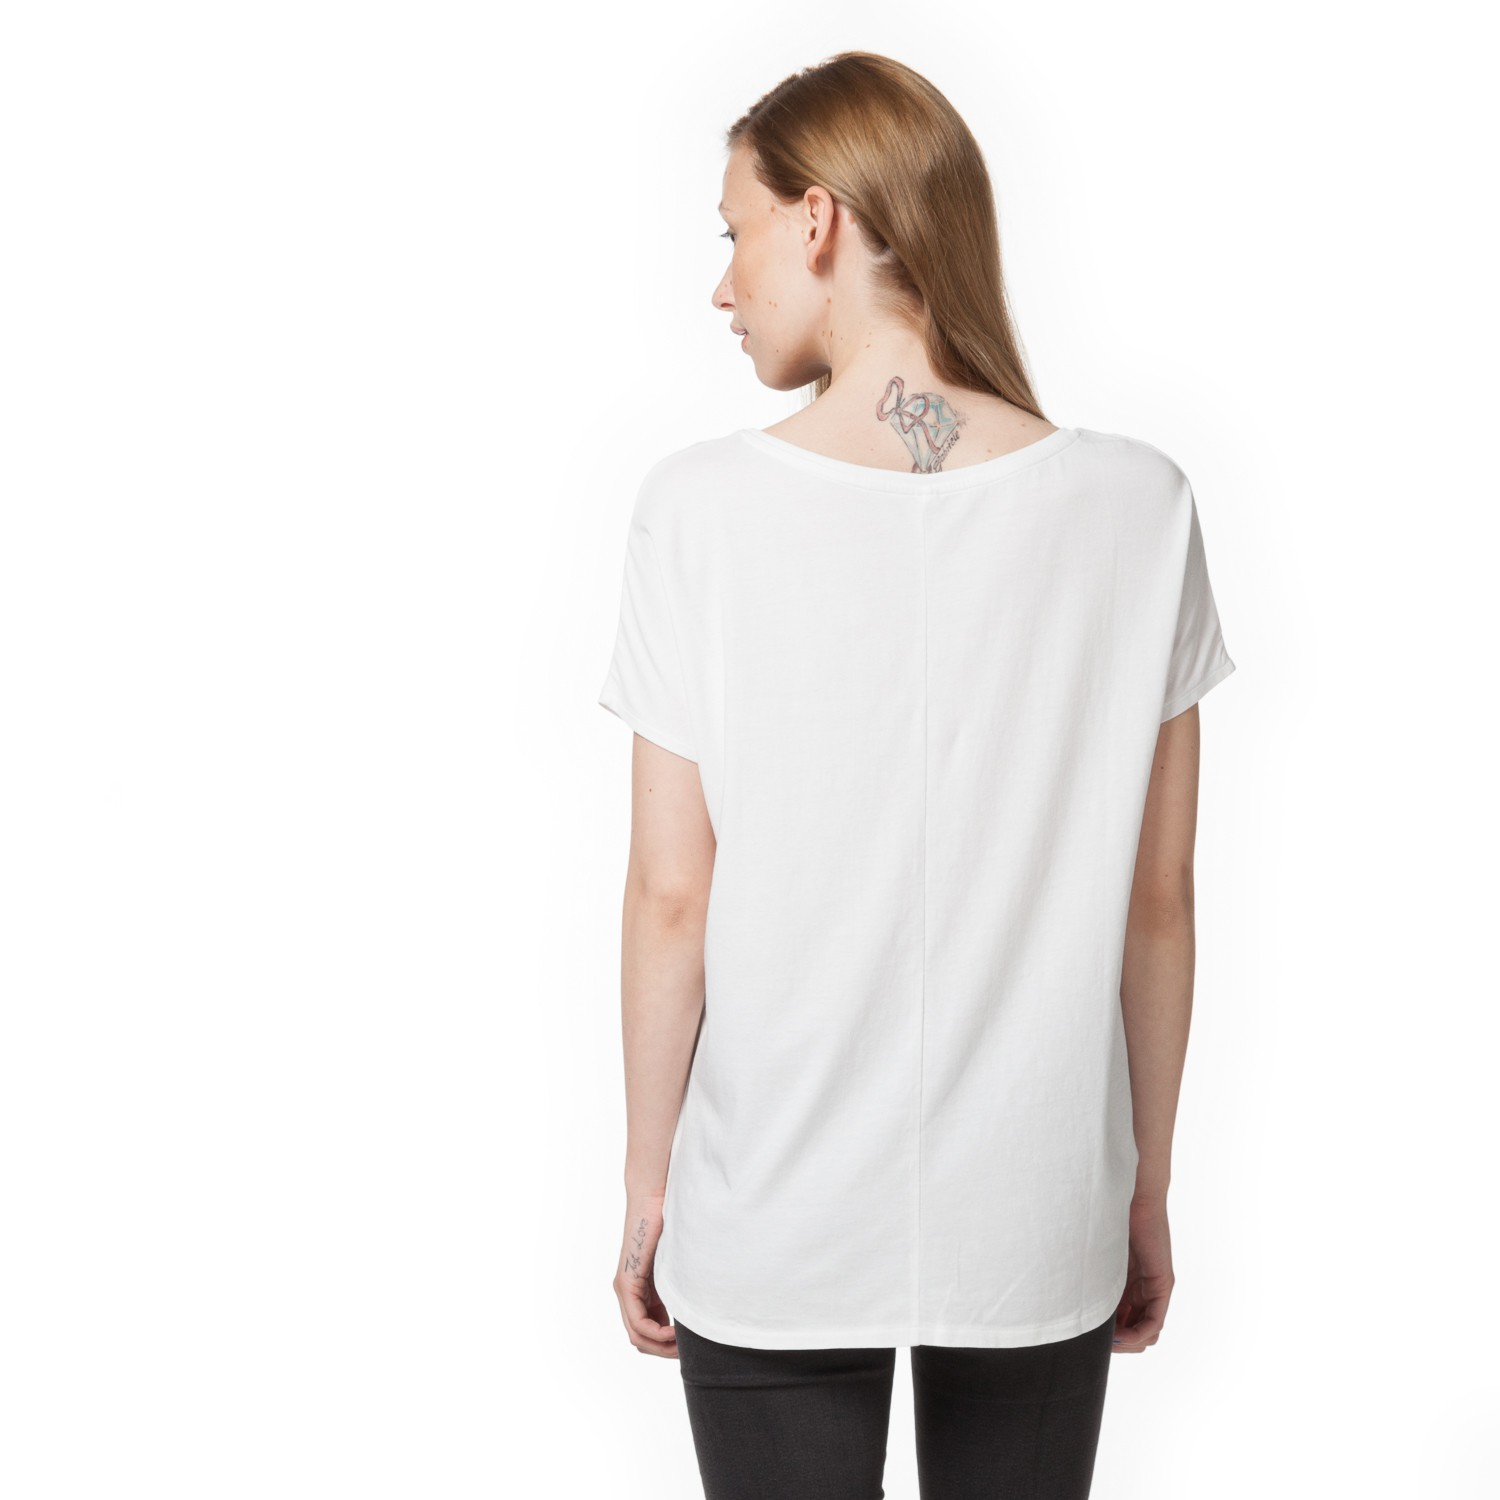 Tt17 oversize t shirt white fairtrade gots sale woman Fair trade plain t shirts